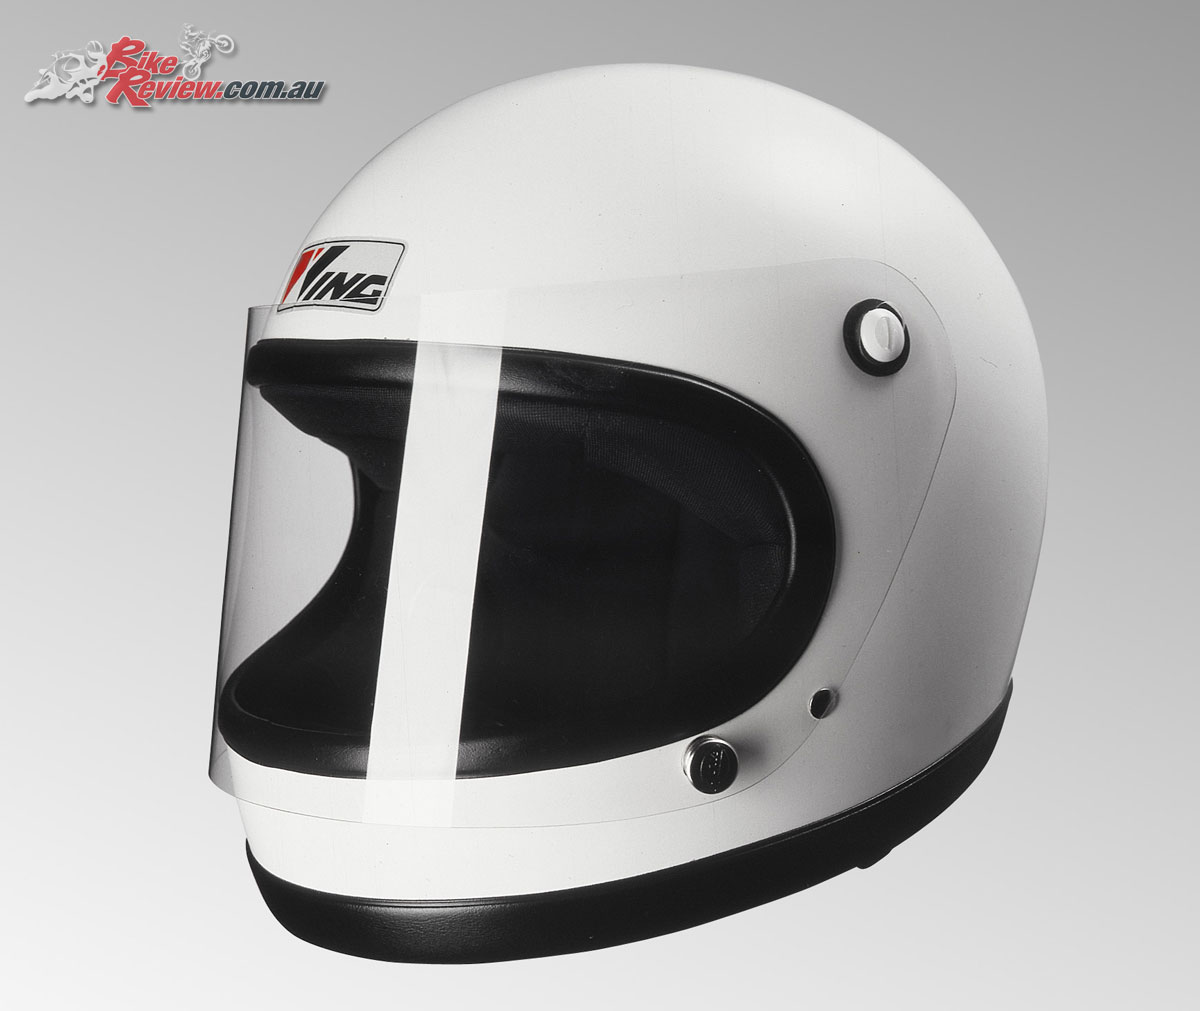 The FF-1 was one of the brand's first helmets